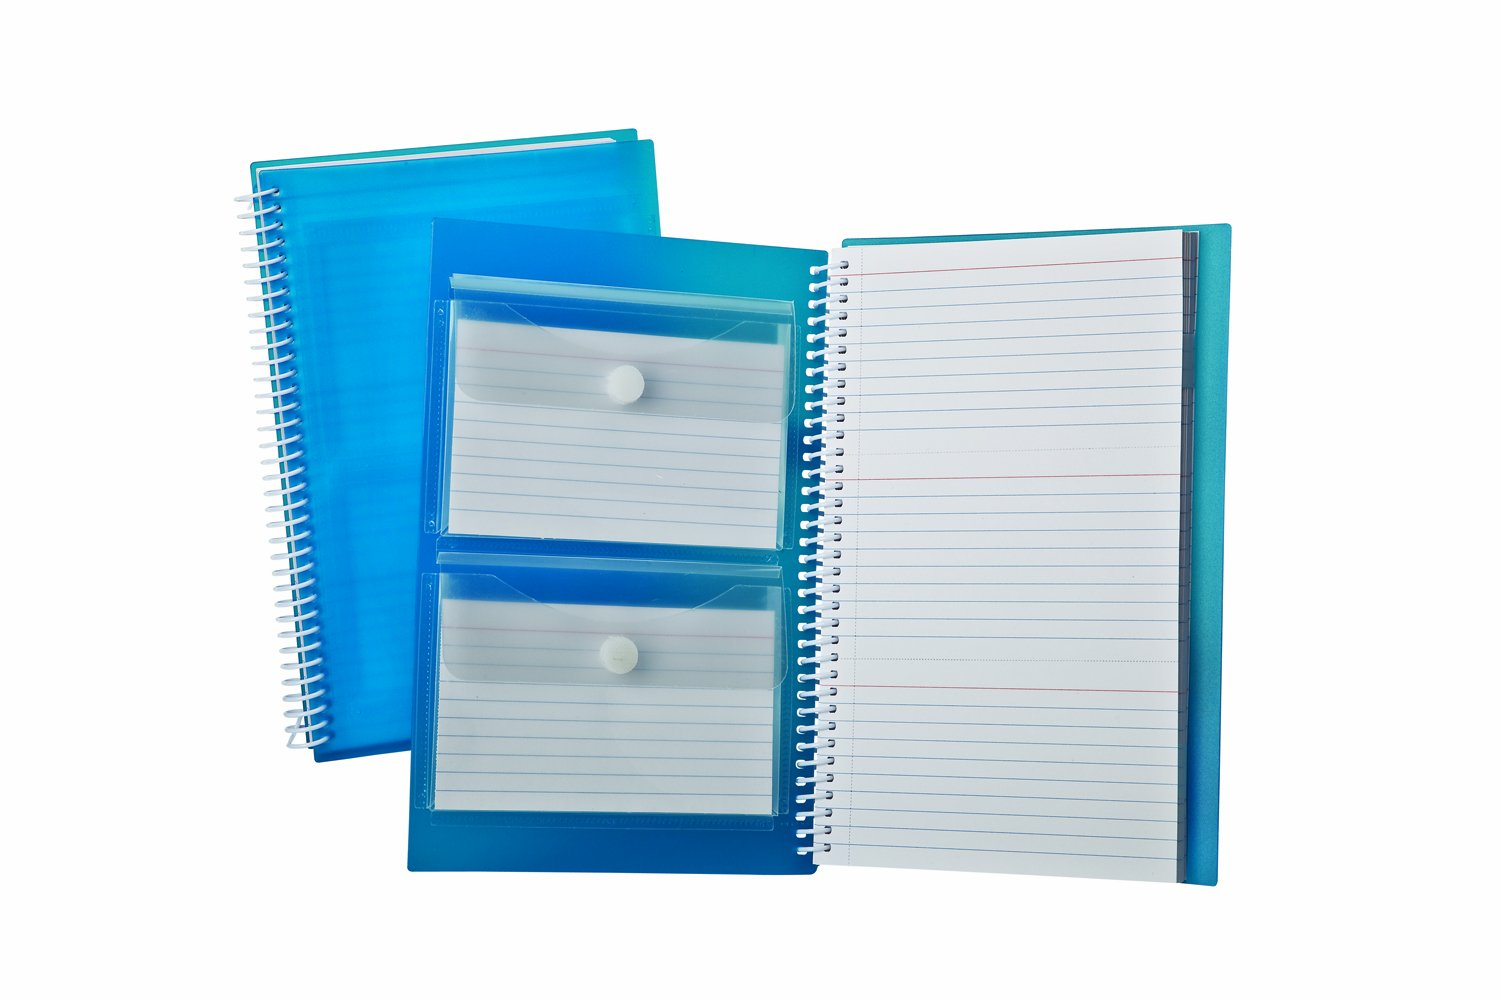 Oxford Index Card Notebook, 3'' x 5'', Ruled, White, 3 Perforated Cards per Sheet, 150 Cards Total (40288)